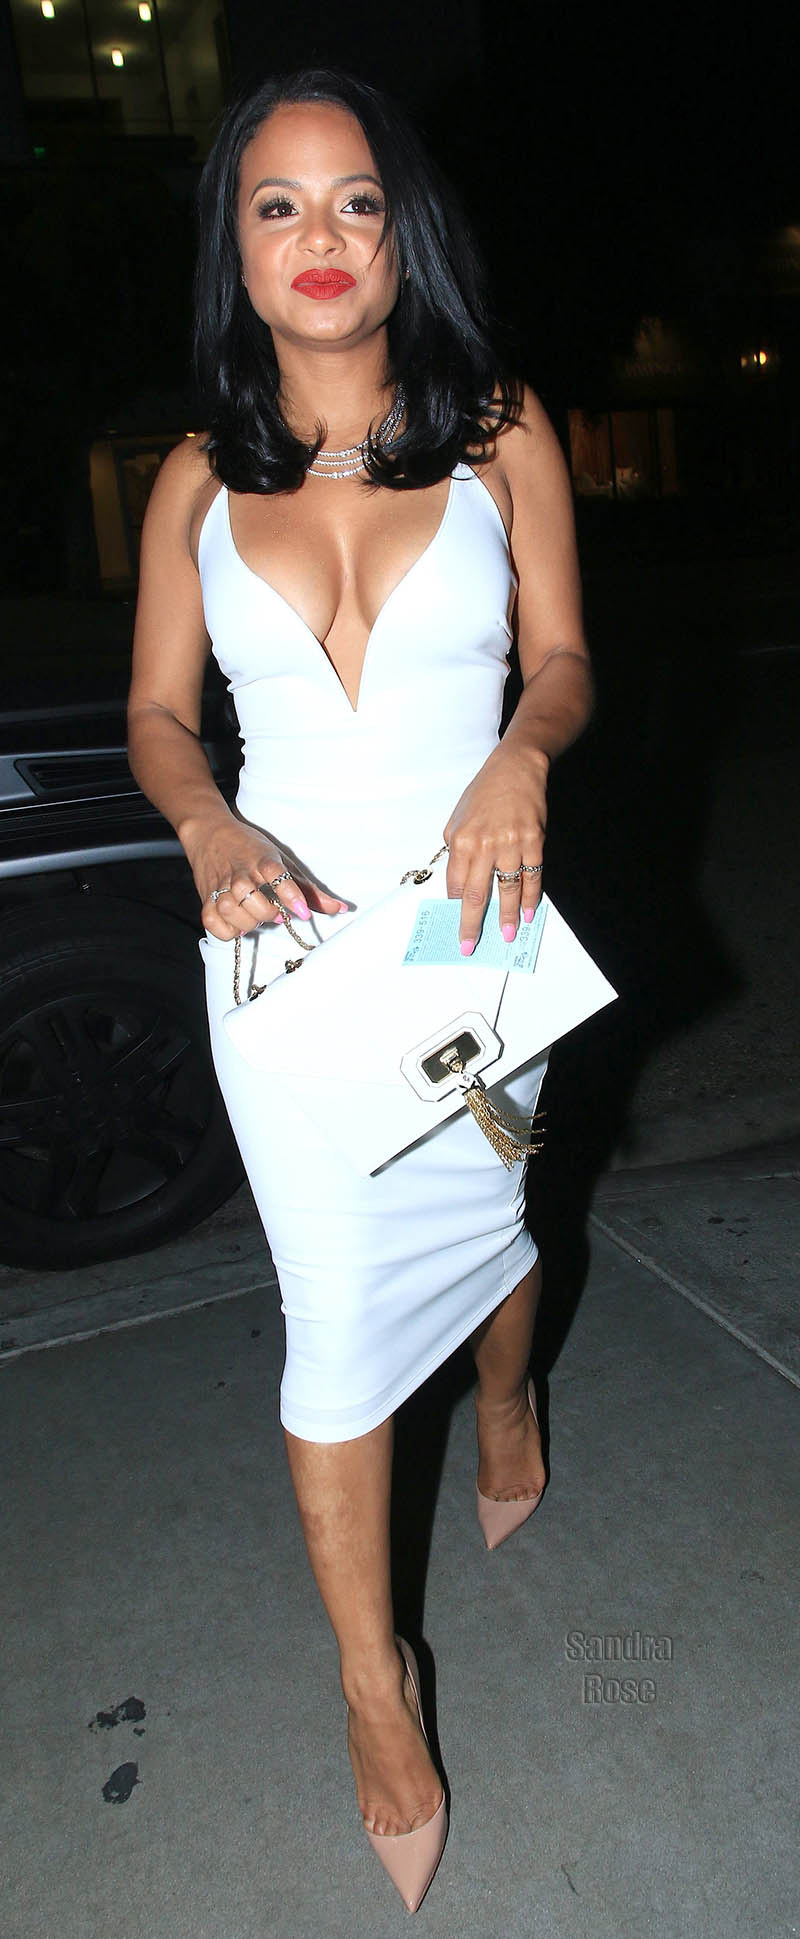 Christina Milian arrive at STK Steakhouse